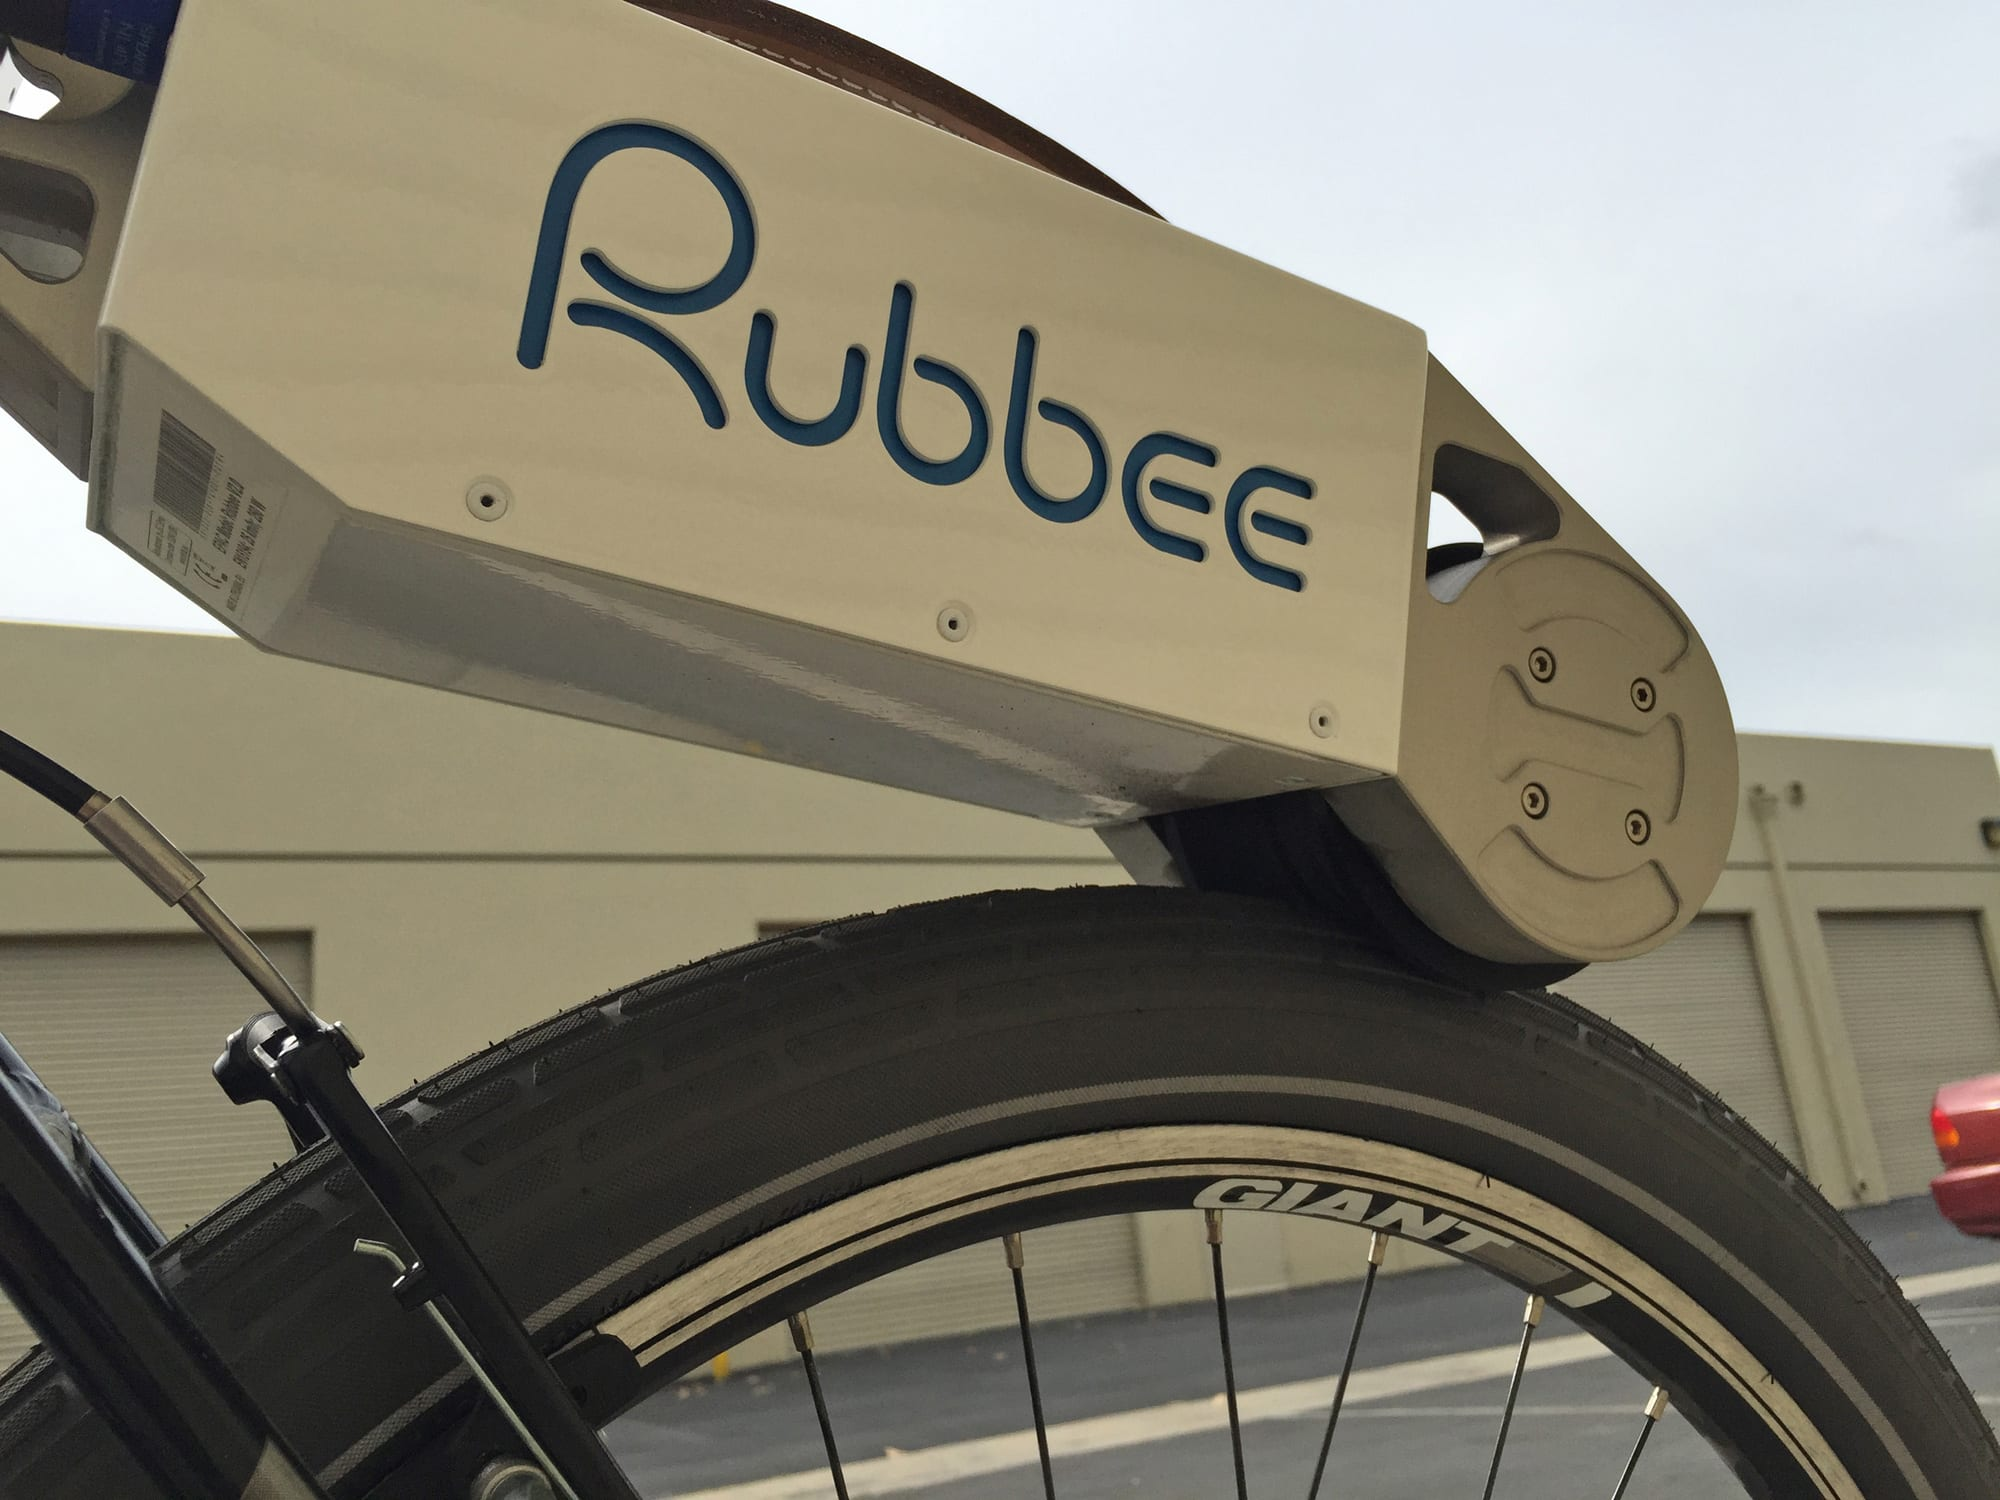 Rubbee Drive 2 0 Review - Prices, Specs, Videos, Photos